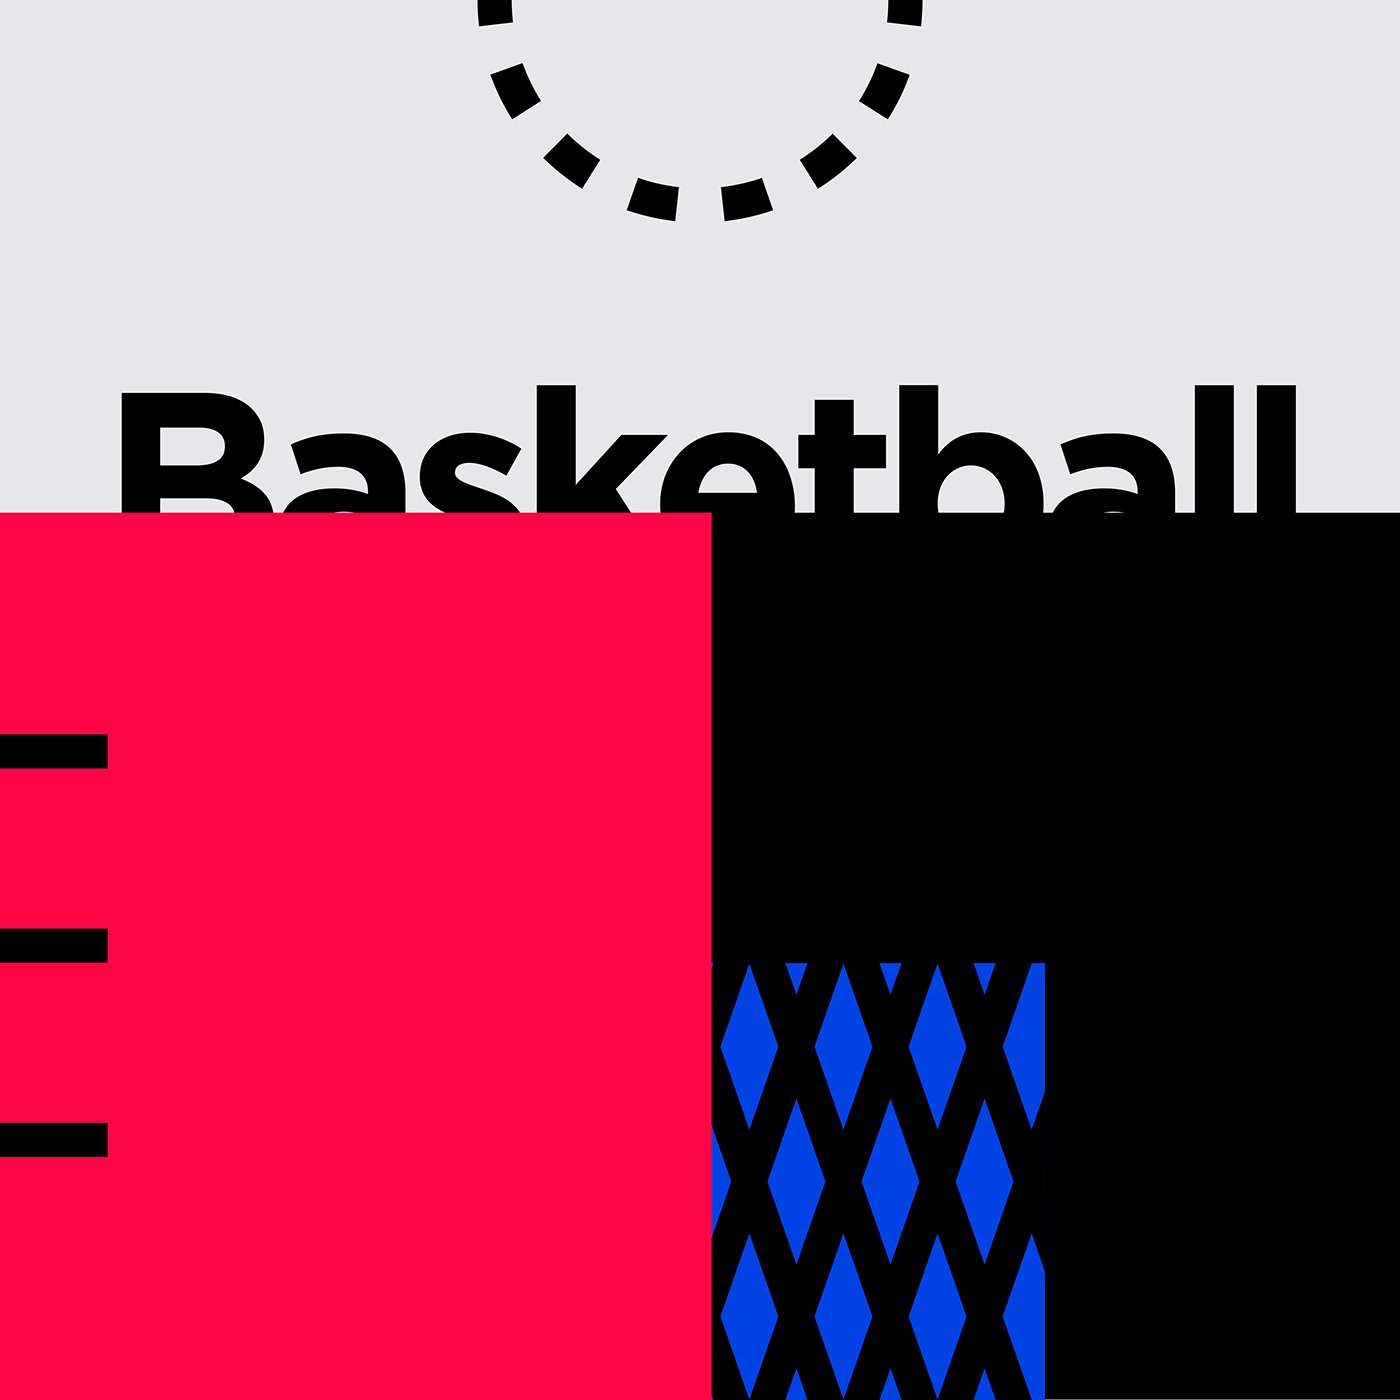 Minimalist Graphic Design - Basketball & Tennis ...